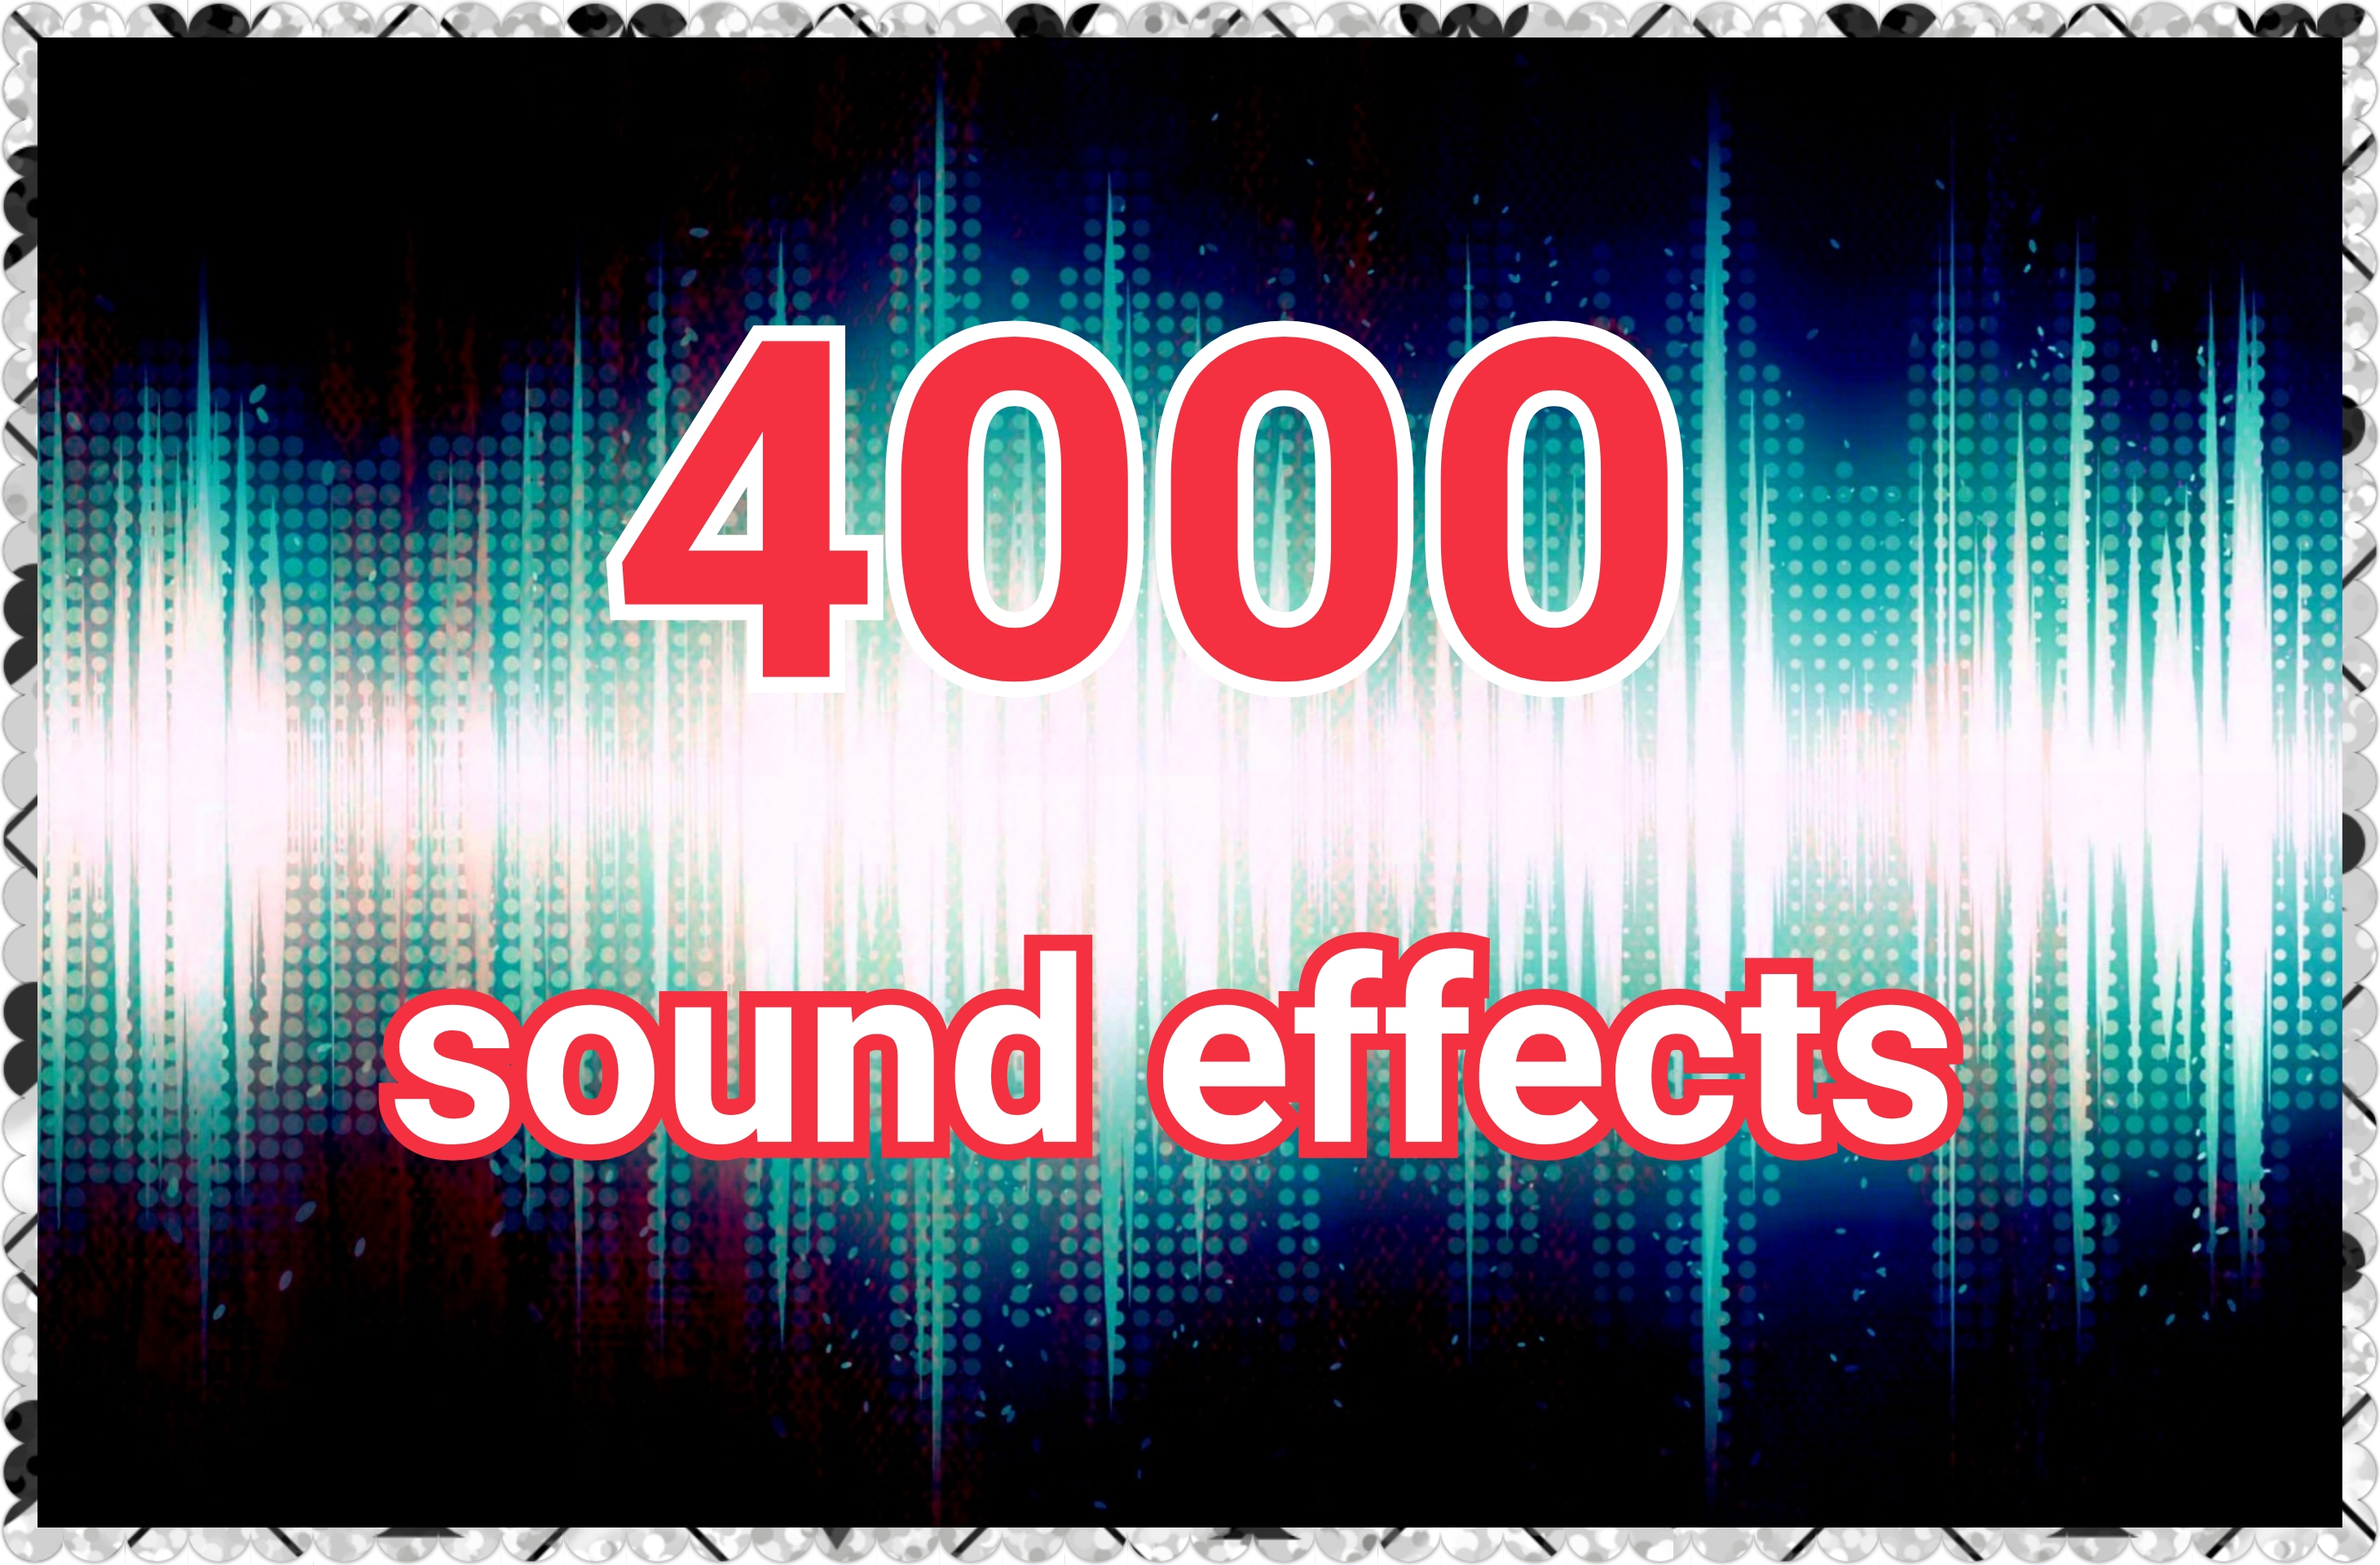 4000 sound effects for editing